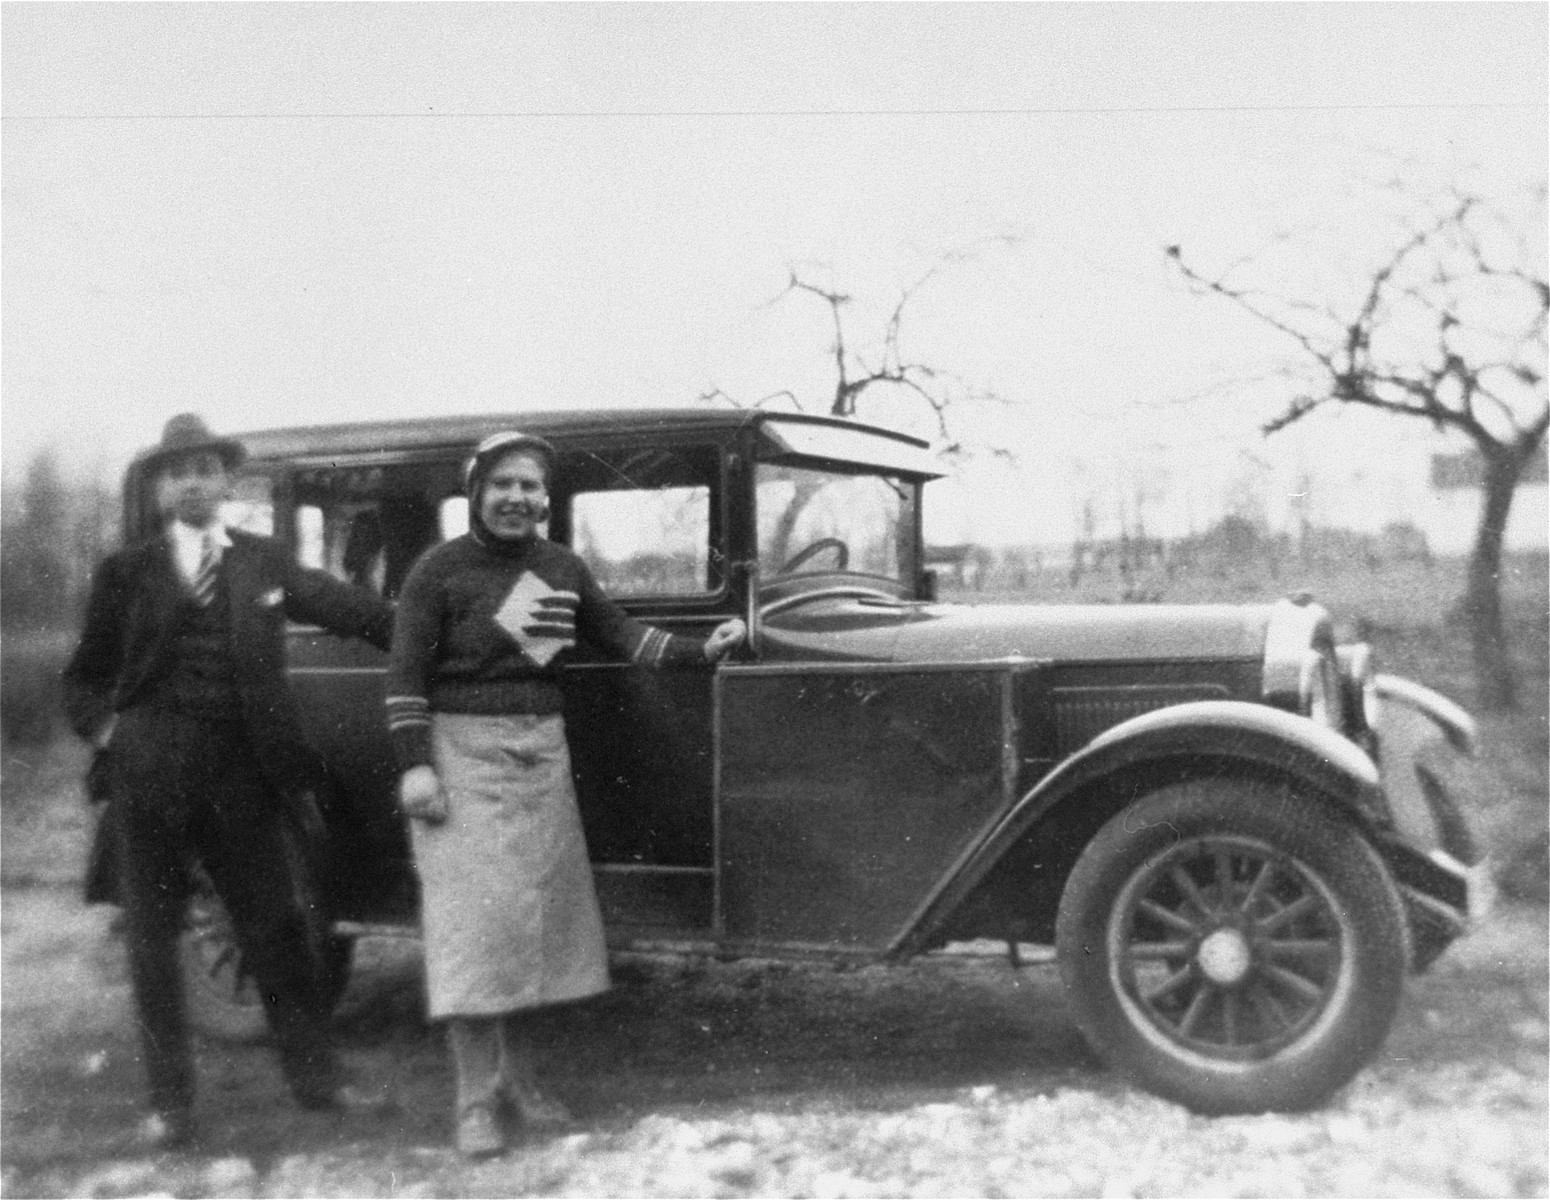 Wilhelm and Annemarie Kusserow with the family car in Bad Lippspringe.  The Kusserow's used the vehicle to distribute religious literature.